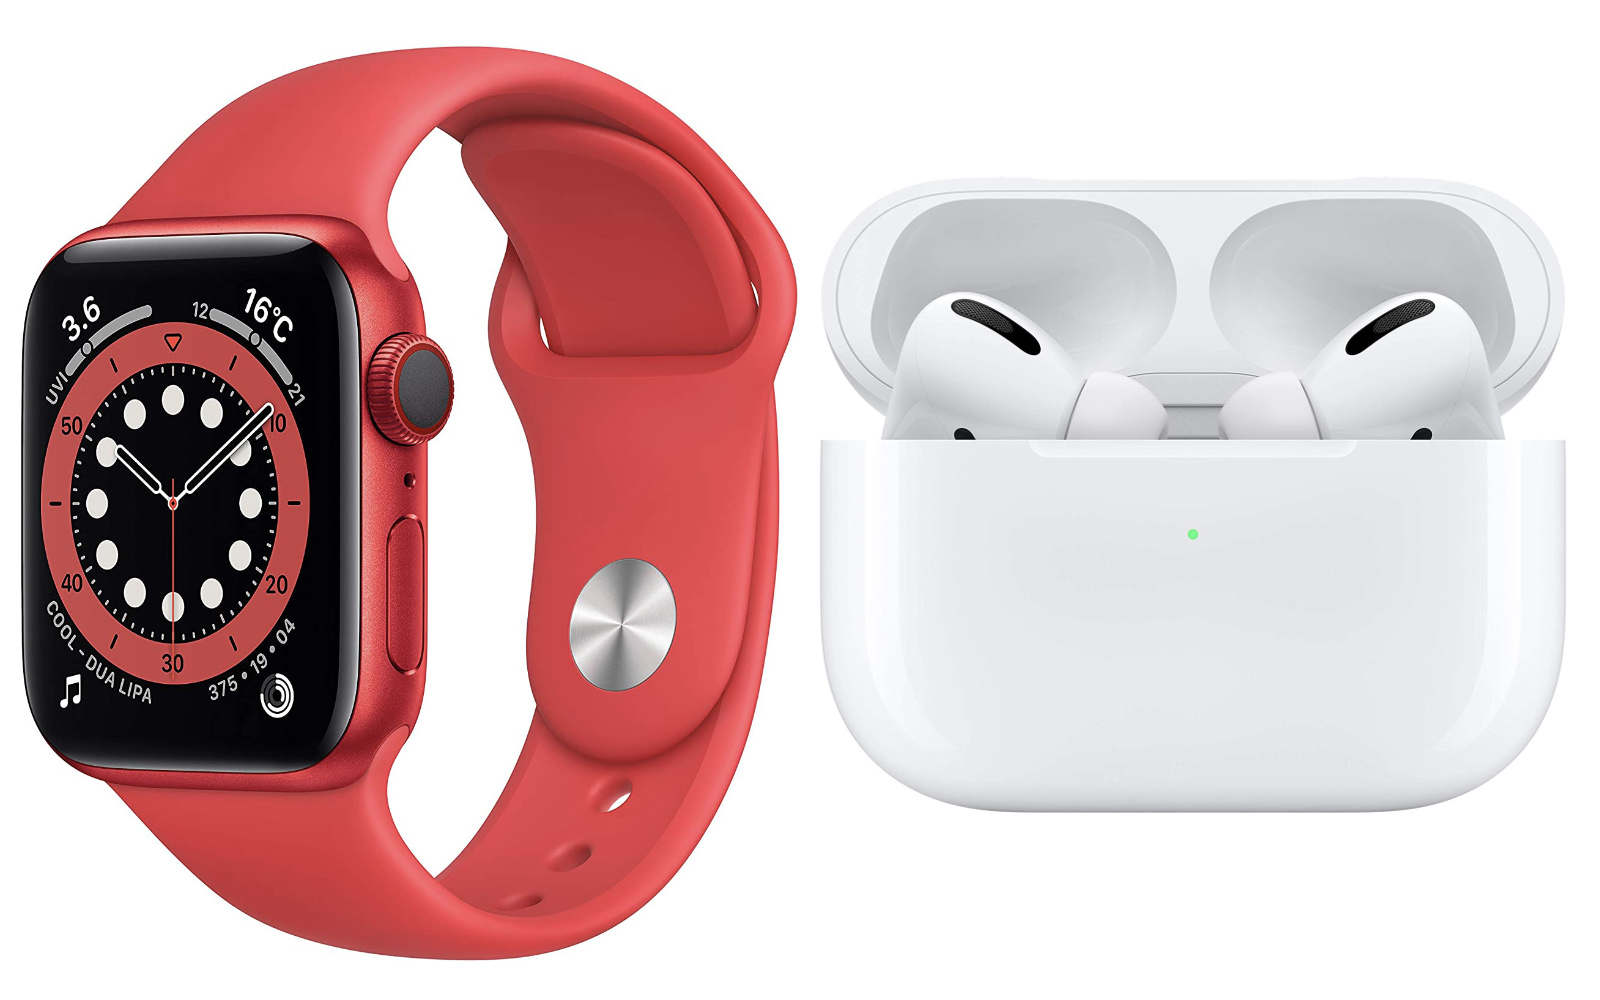 Applewatch and airpodspro